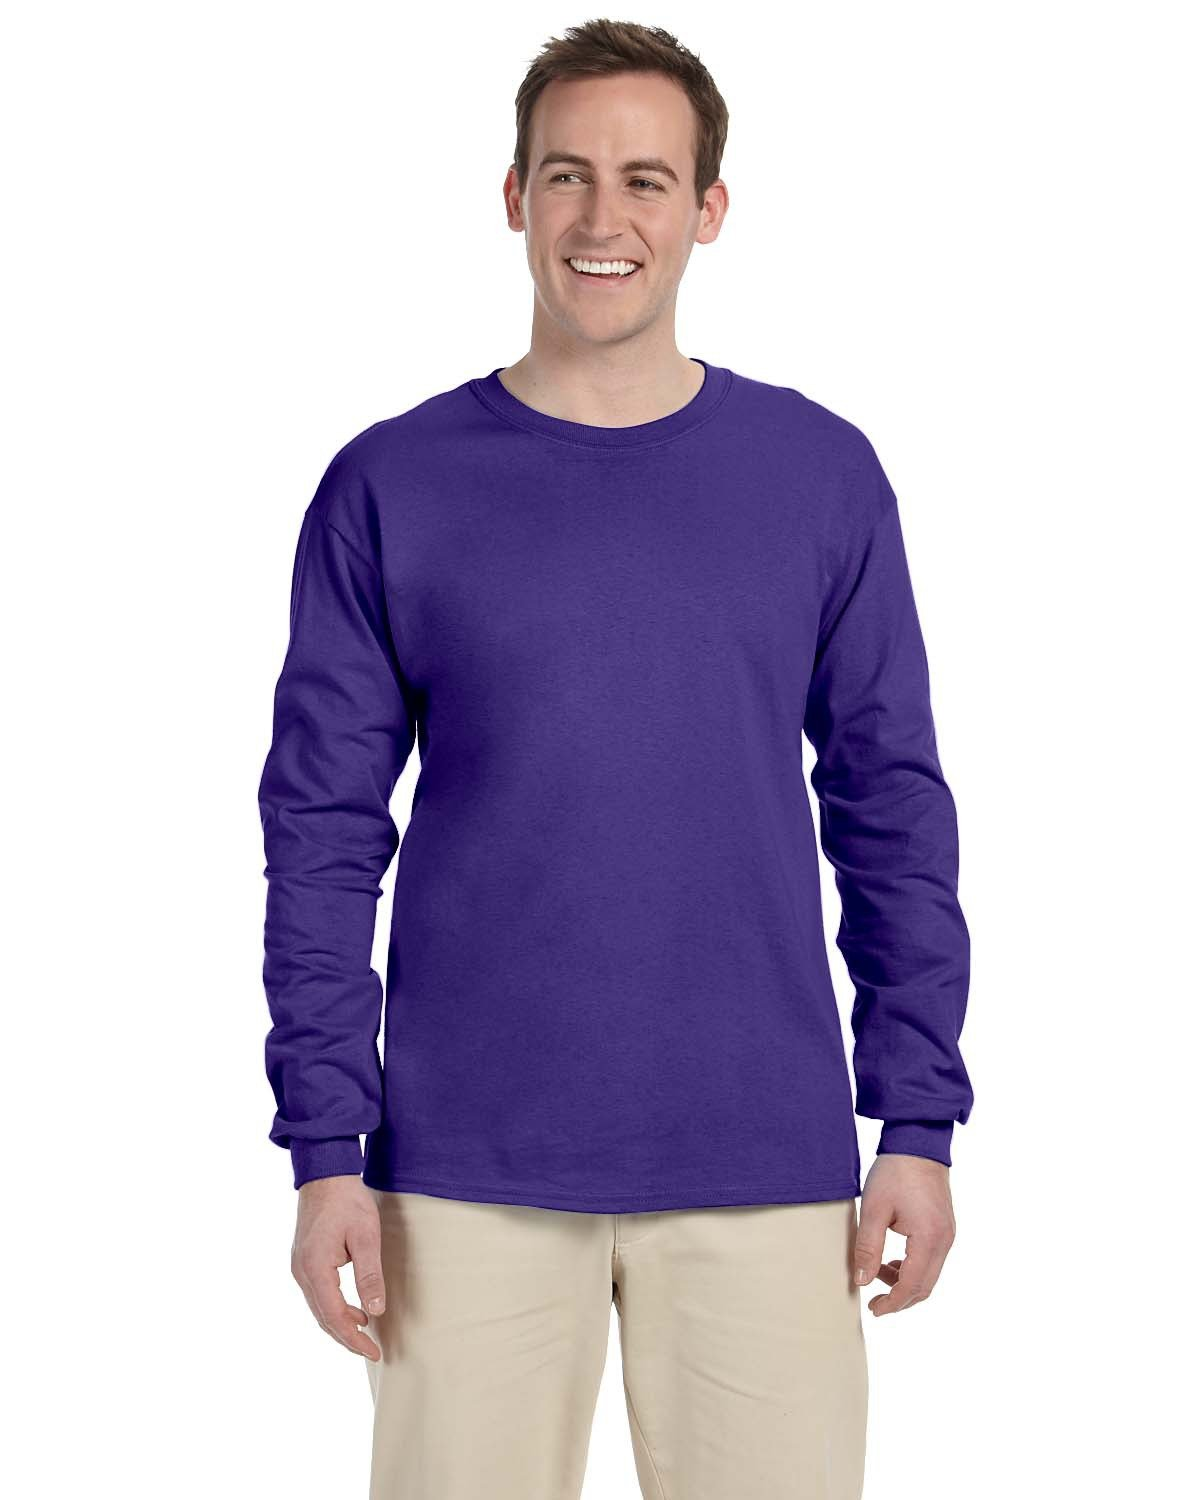 Fruit of the Loom Adult HD Cotton™ Long-Sleeve T-Shirt PURPLE